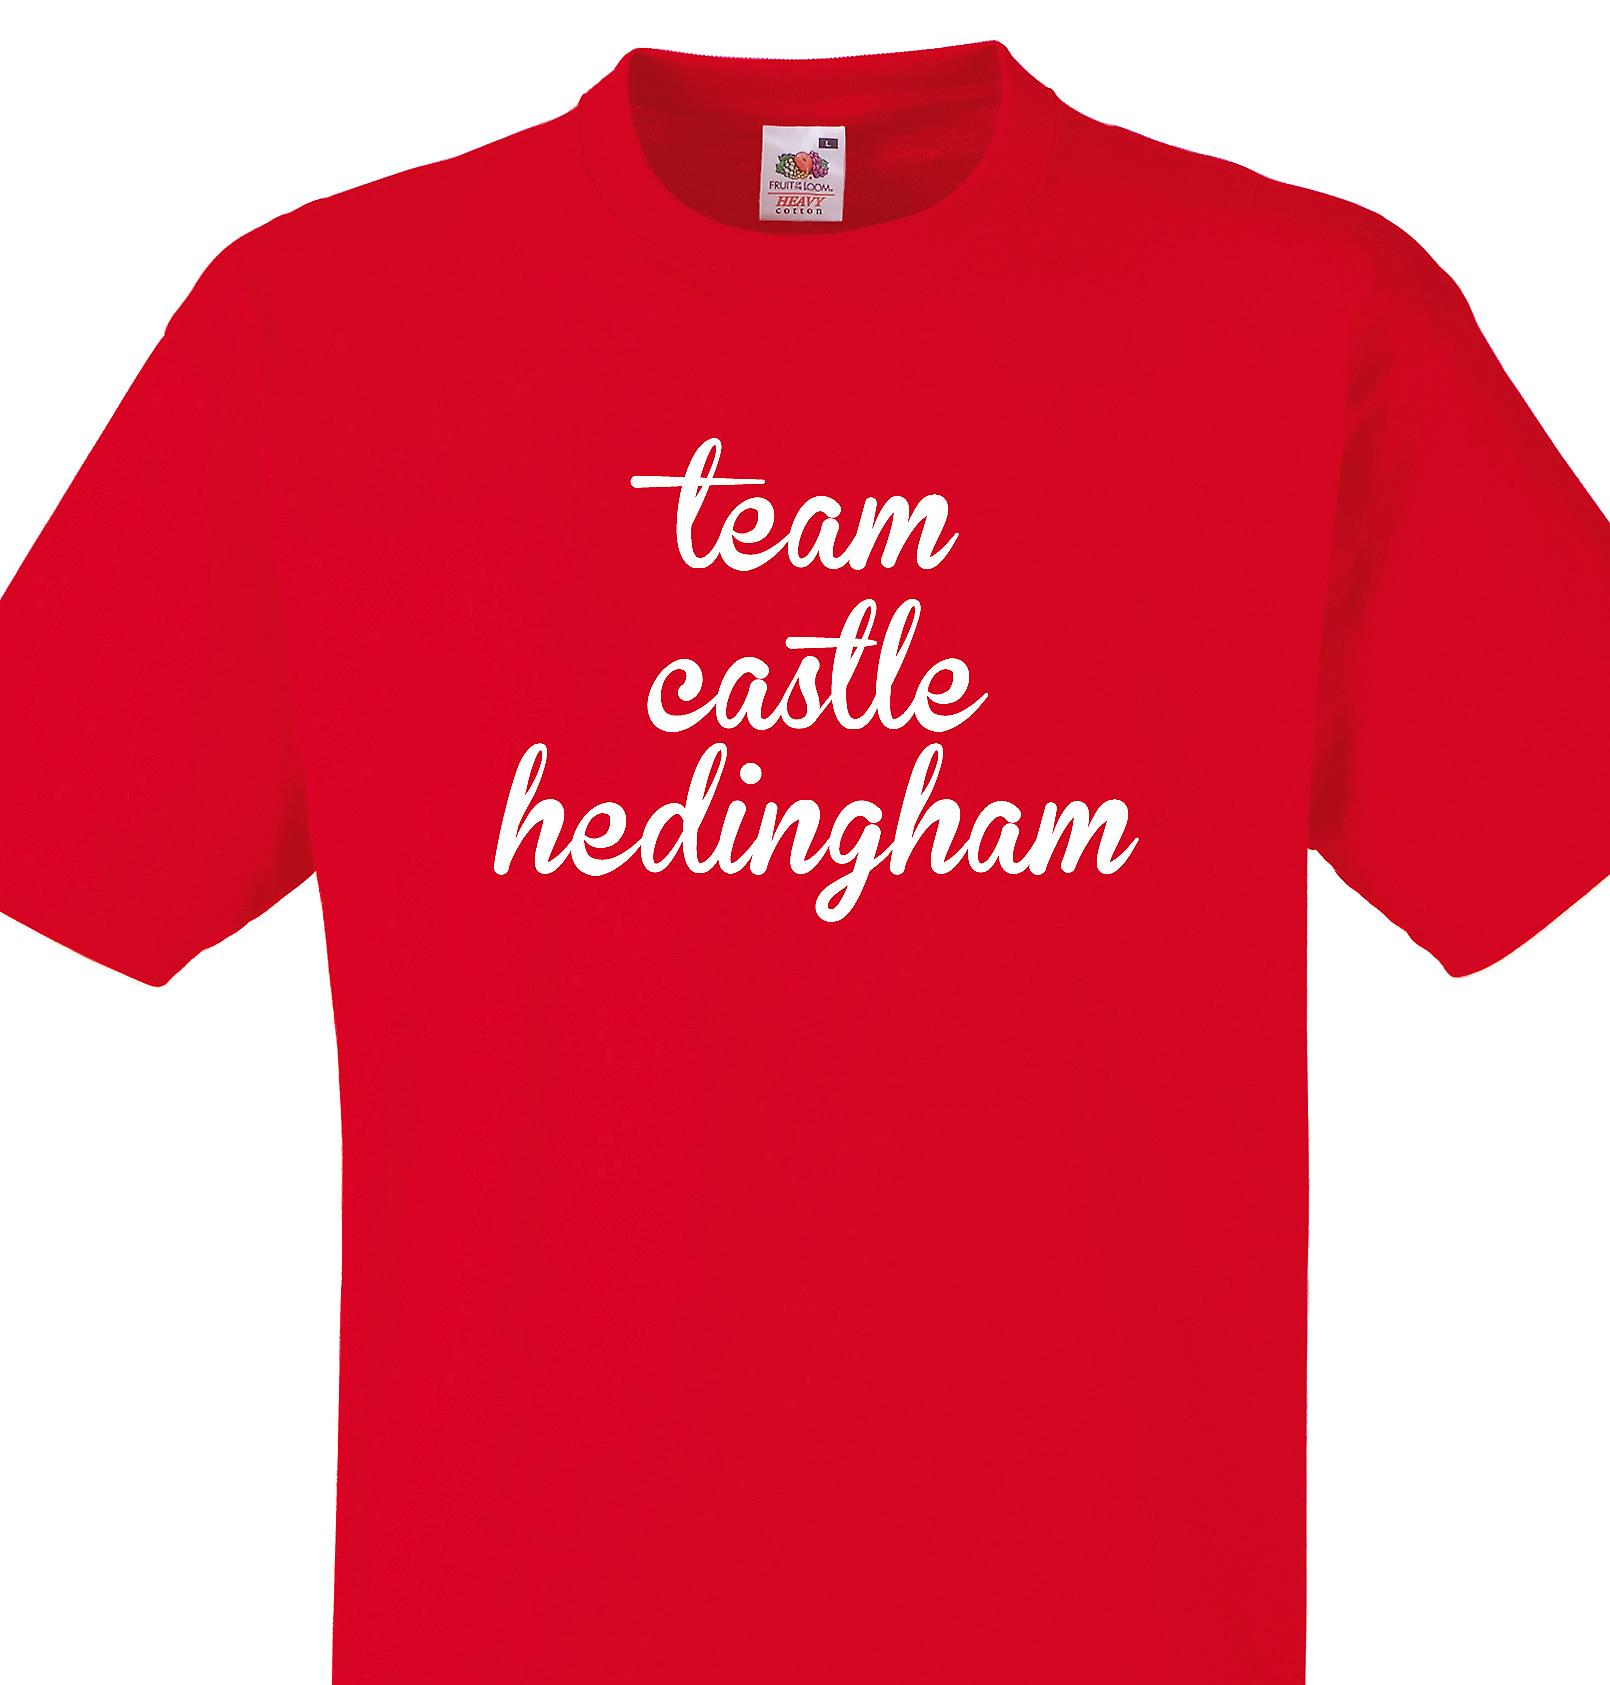 Team Castle hedingham Red T shirt